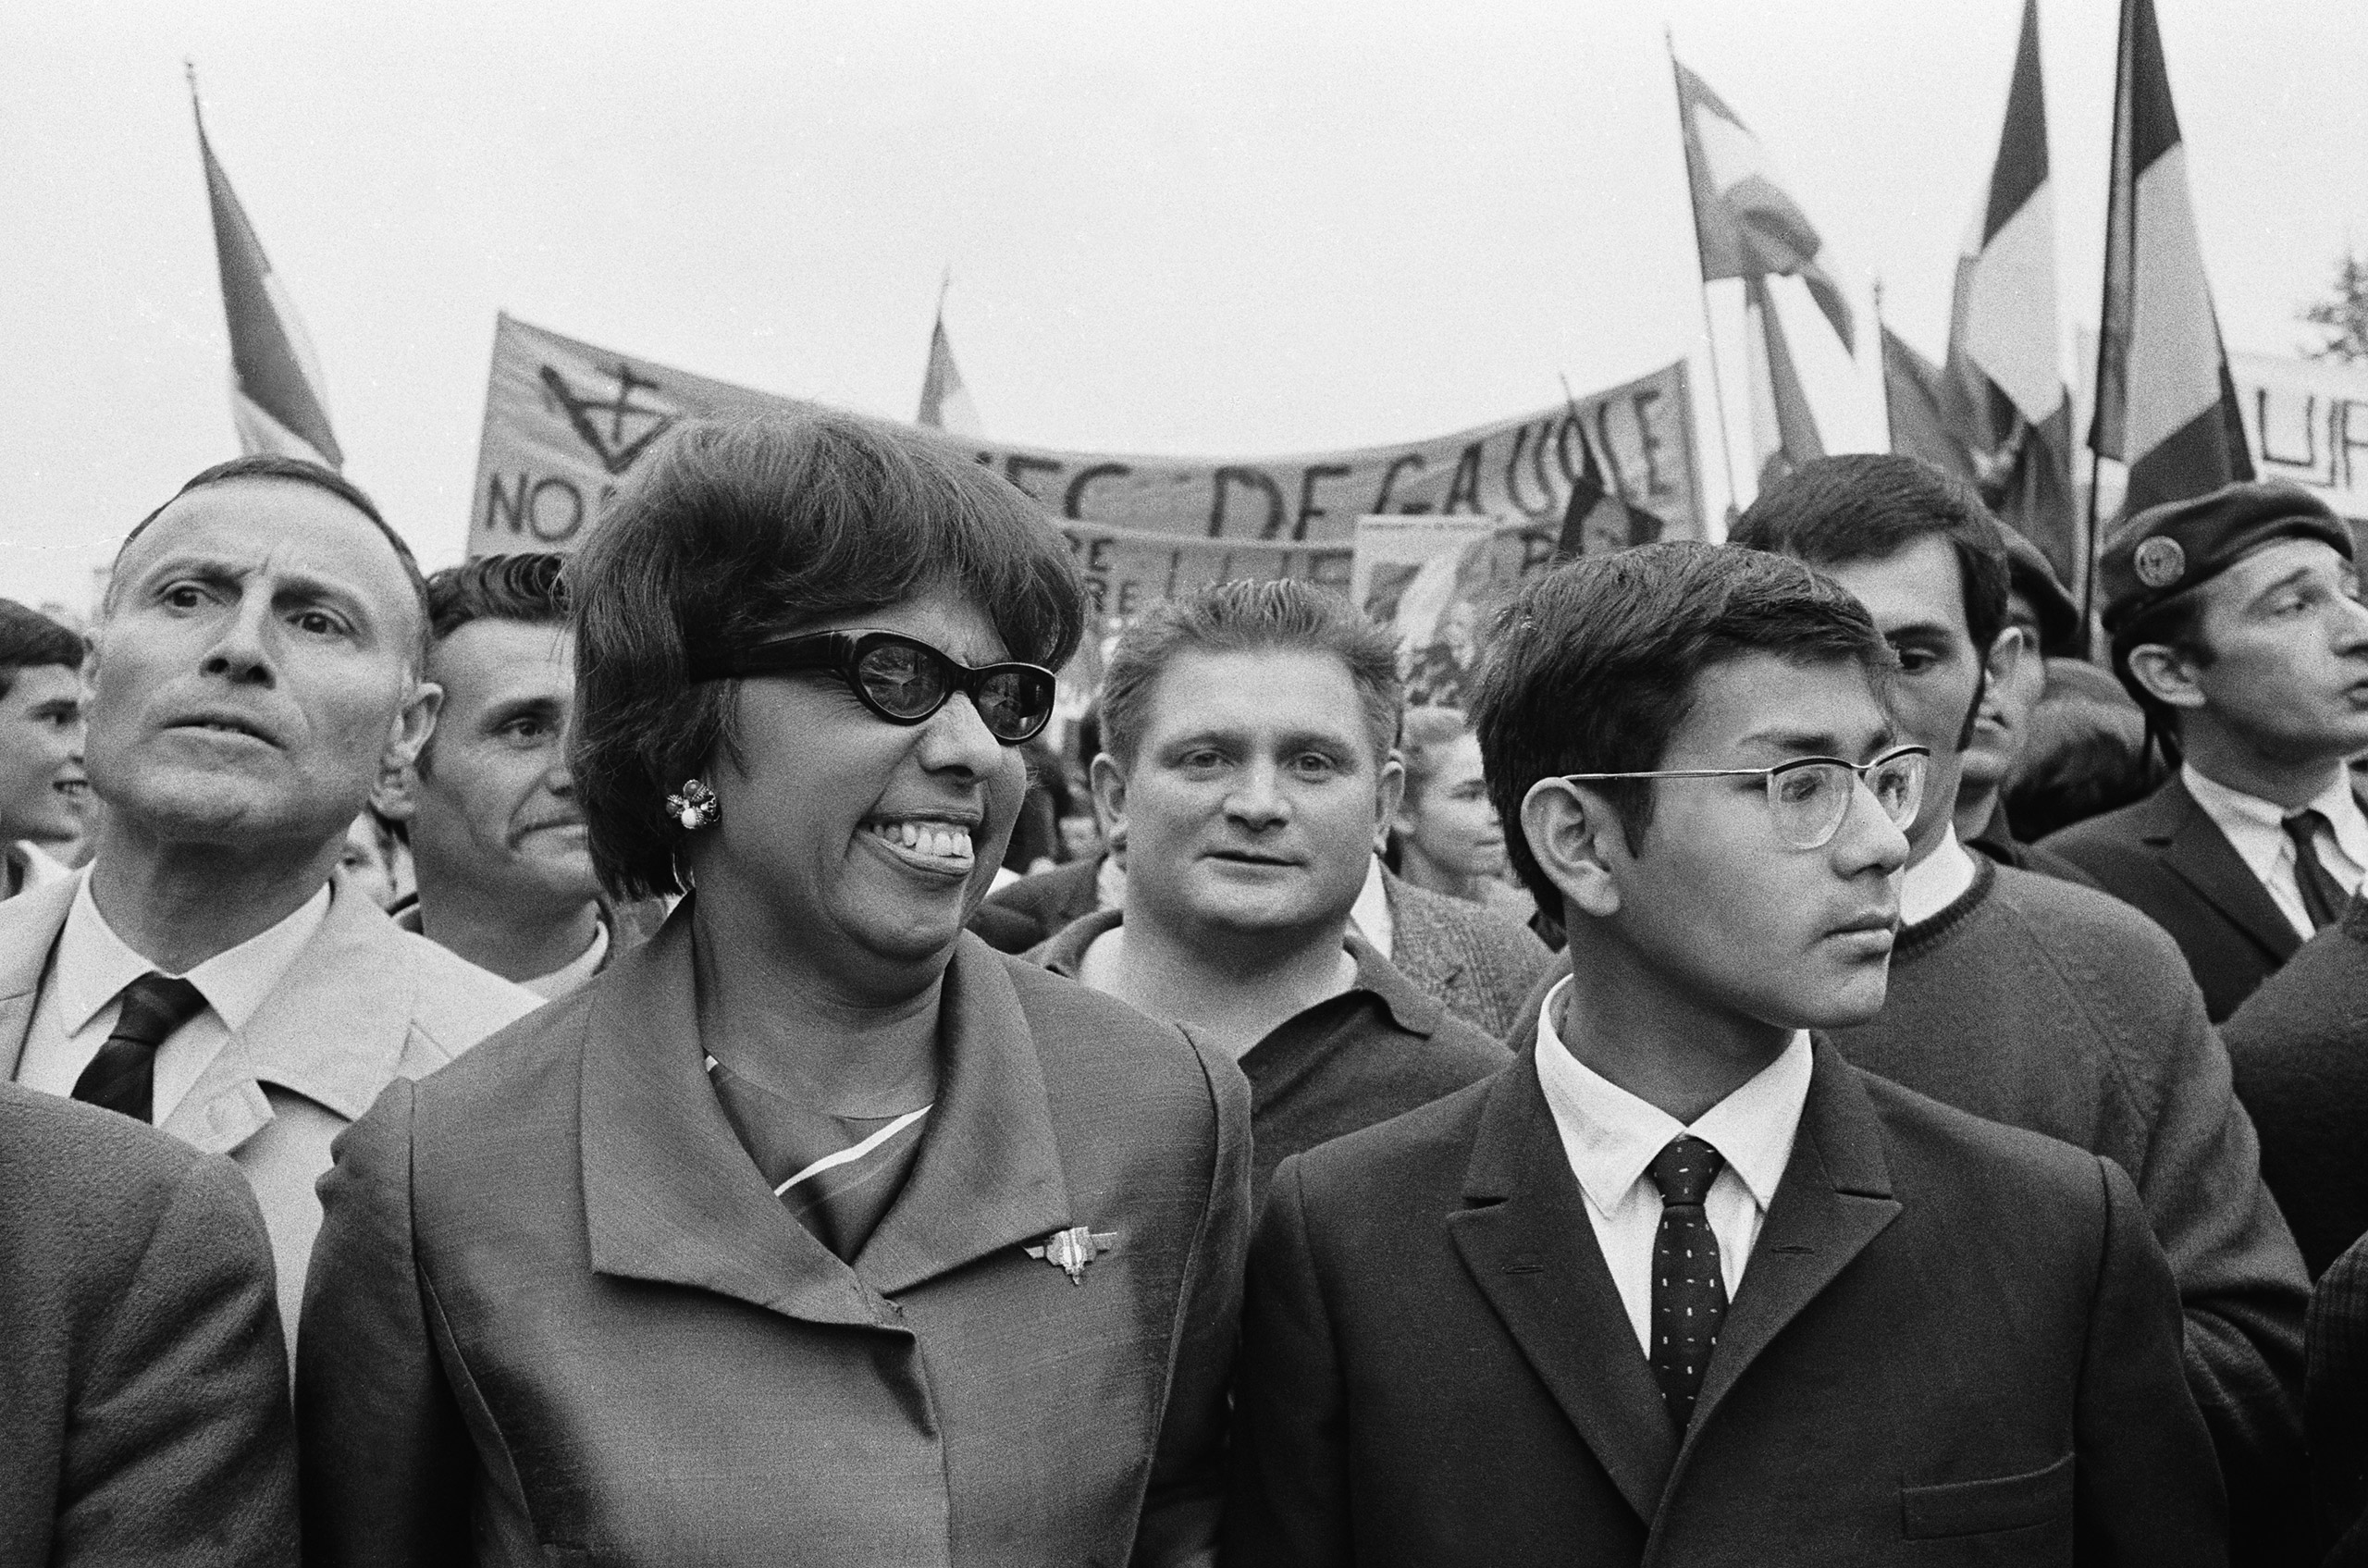 Josephine Baker at a demonstration in Paris, on May 30, 1968.